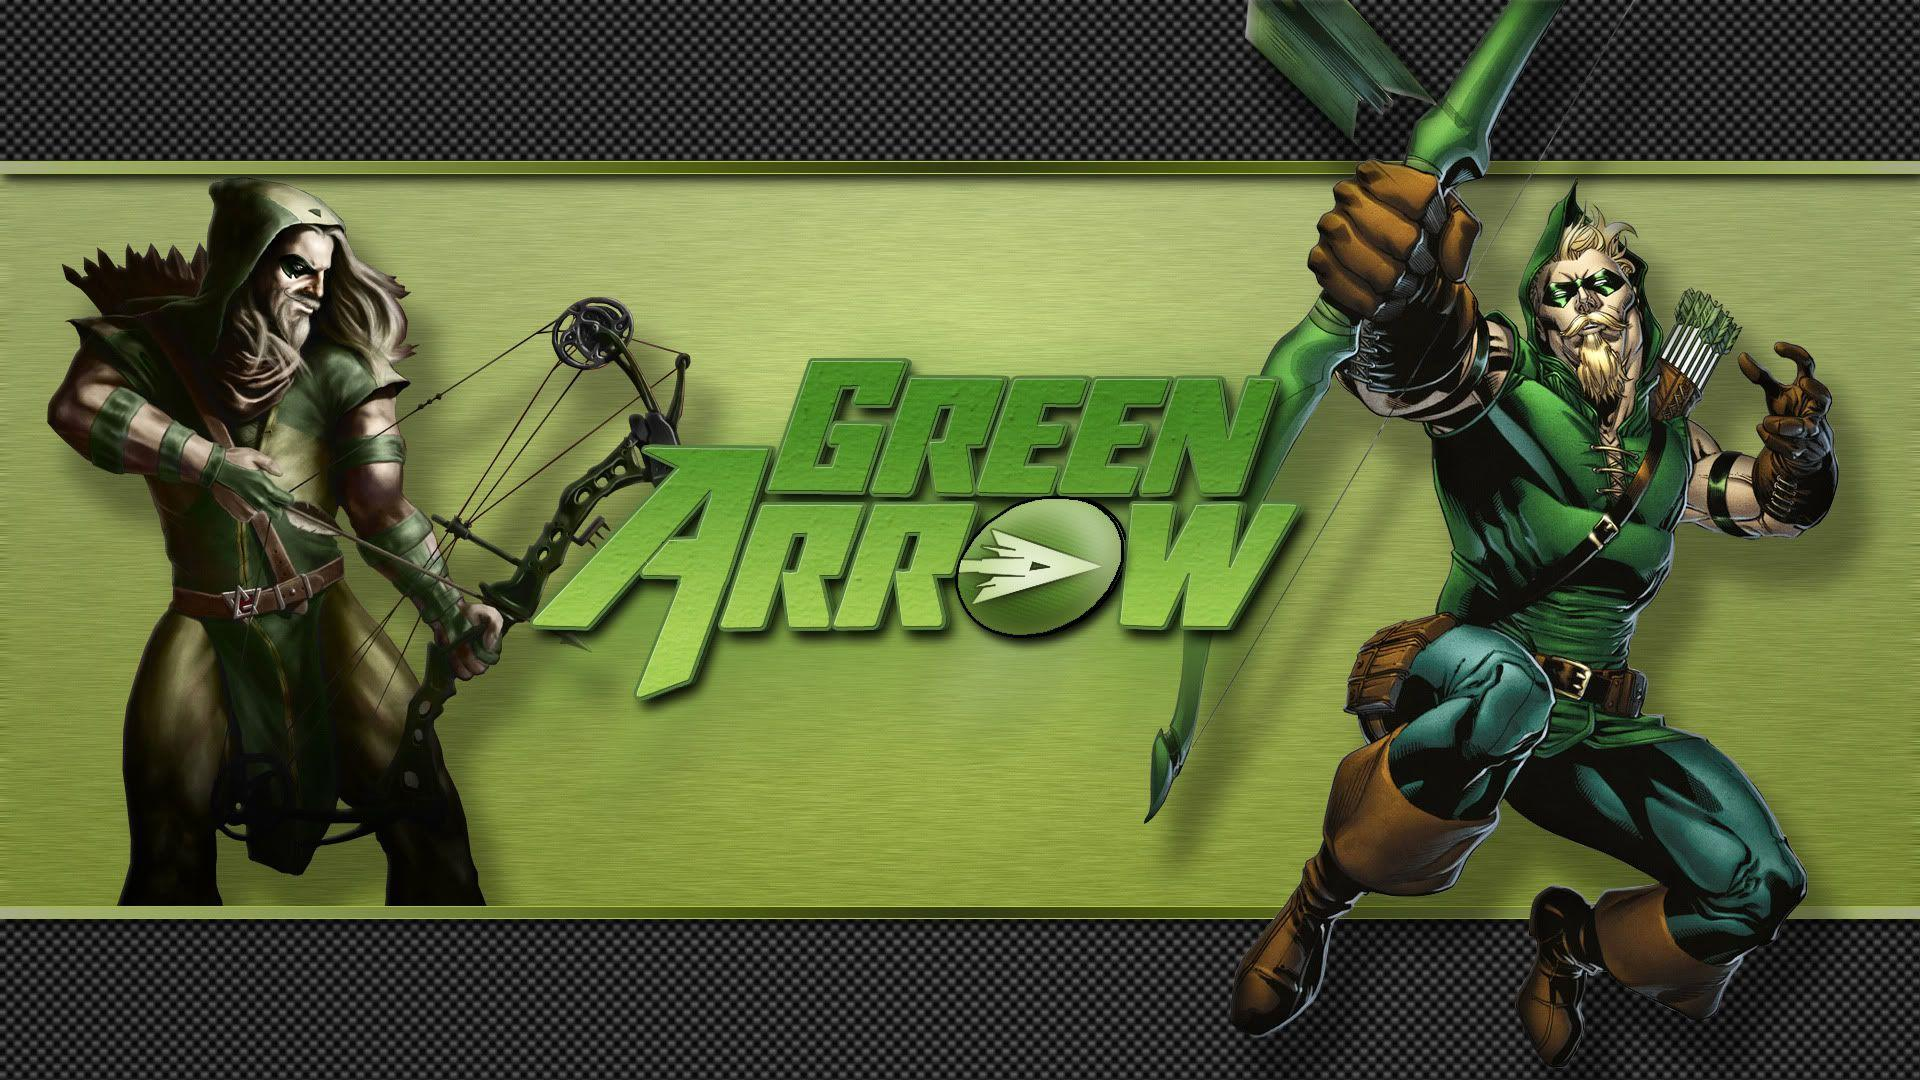 images for green arrow wallpaper hd